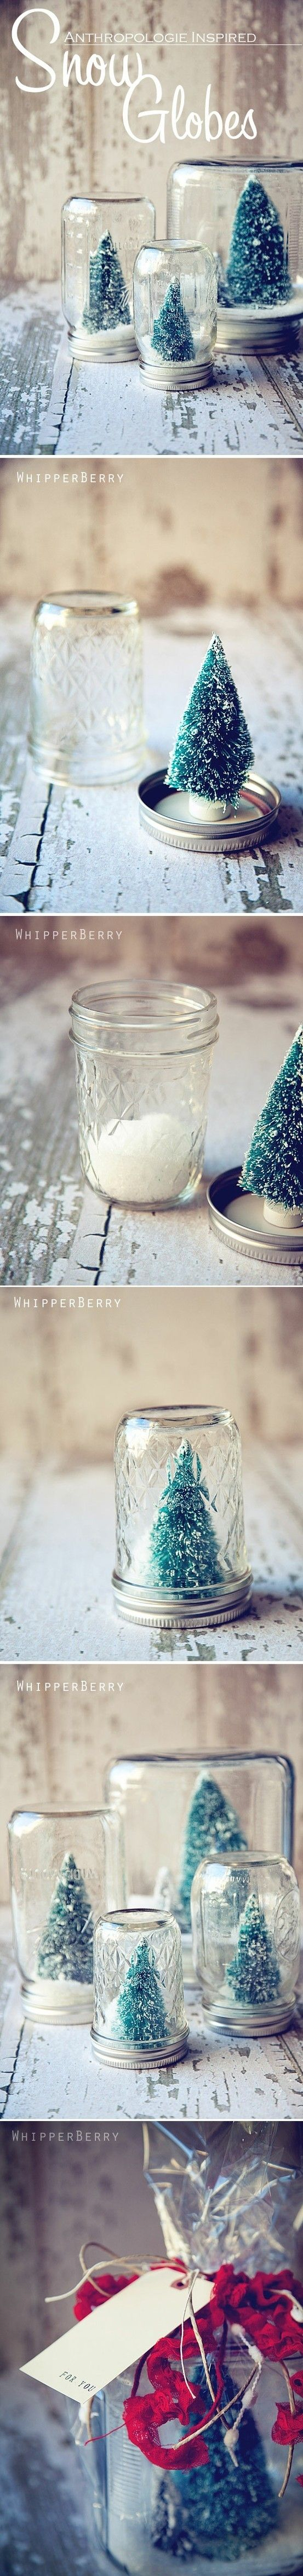 Make snow globes out of jars. | 26 Last-Minute DIY Christmas Hacks | none of these are really 'last minute', but they are good crafts!: